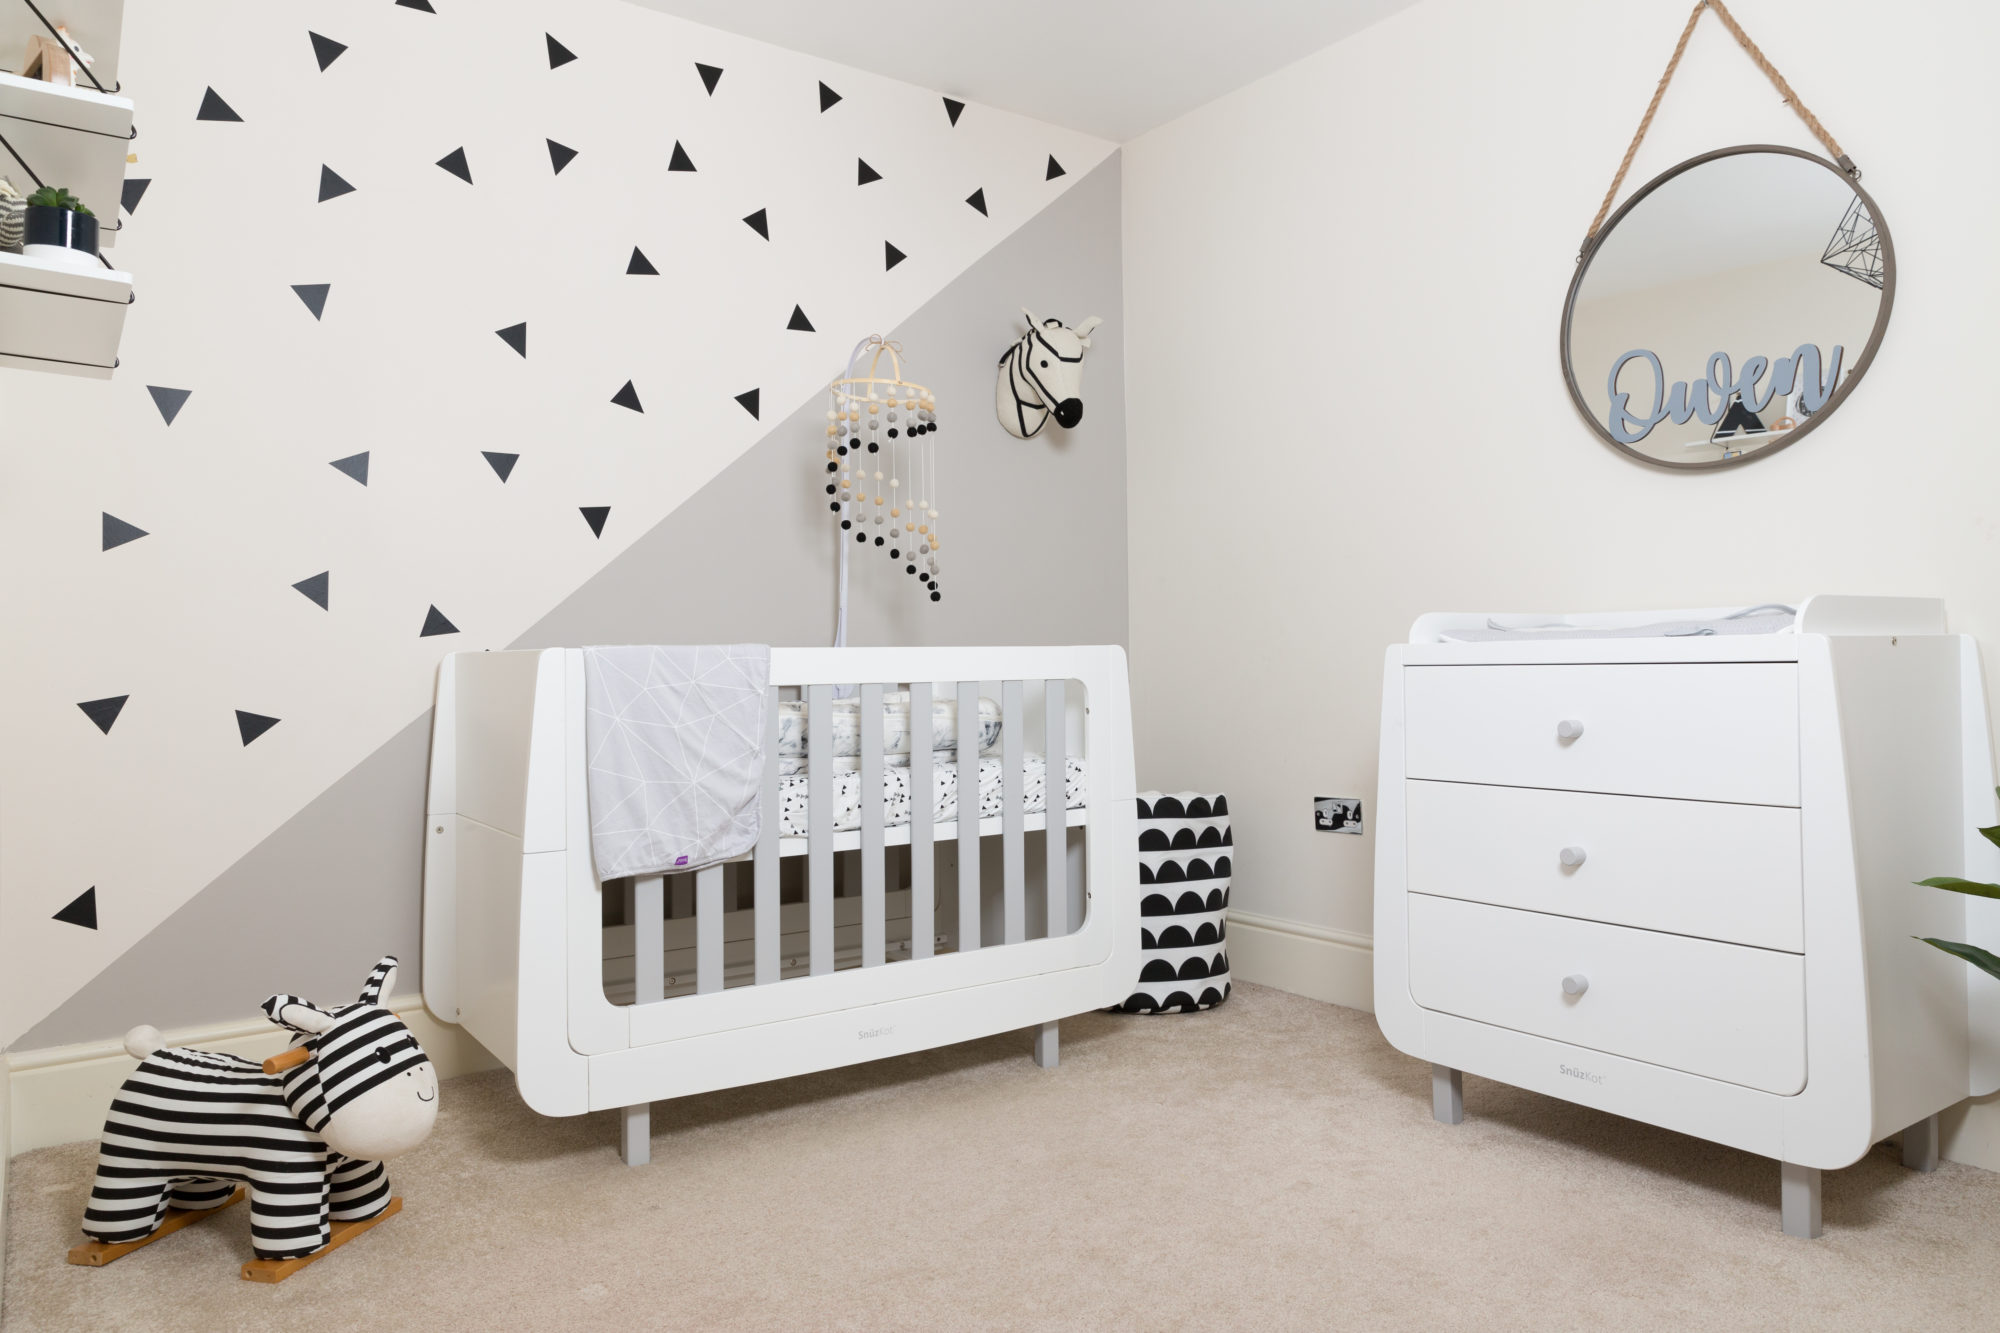 A Baby Nursery Room Tour Featuring Snuz - Lets Talk Mommy